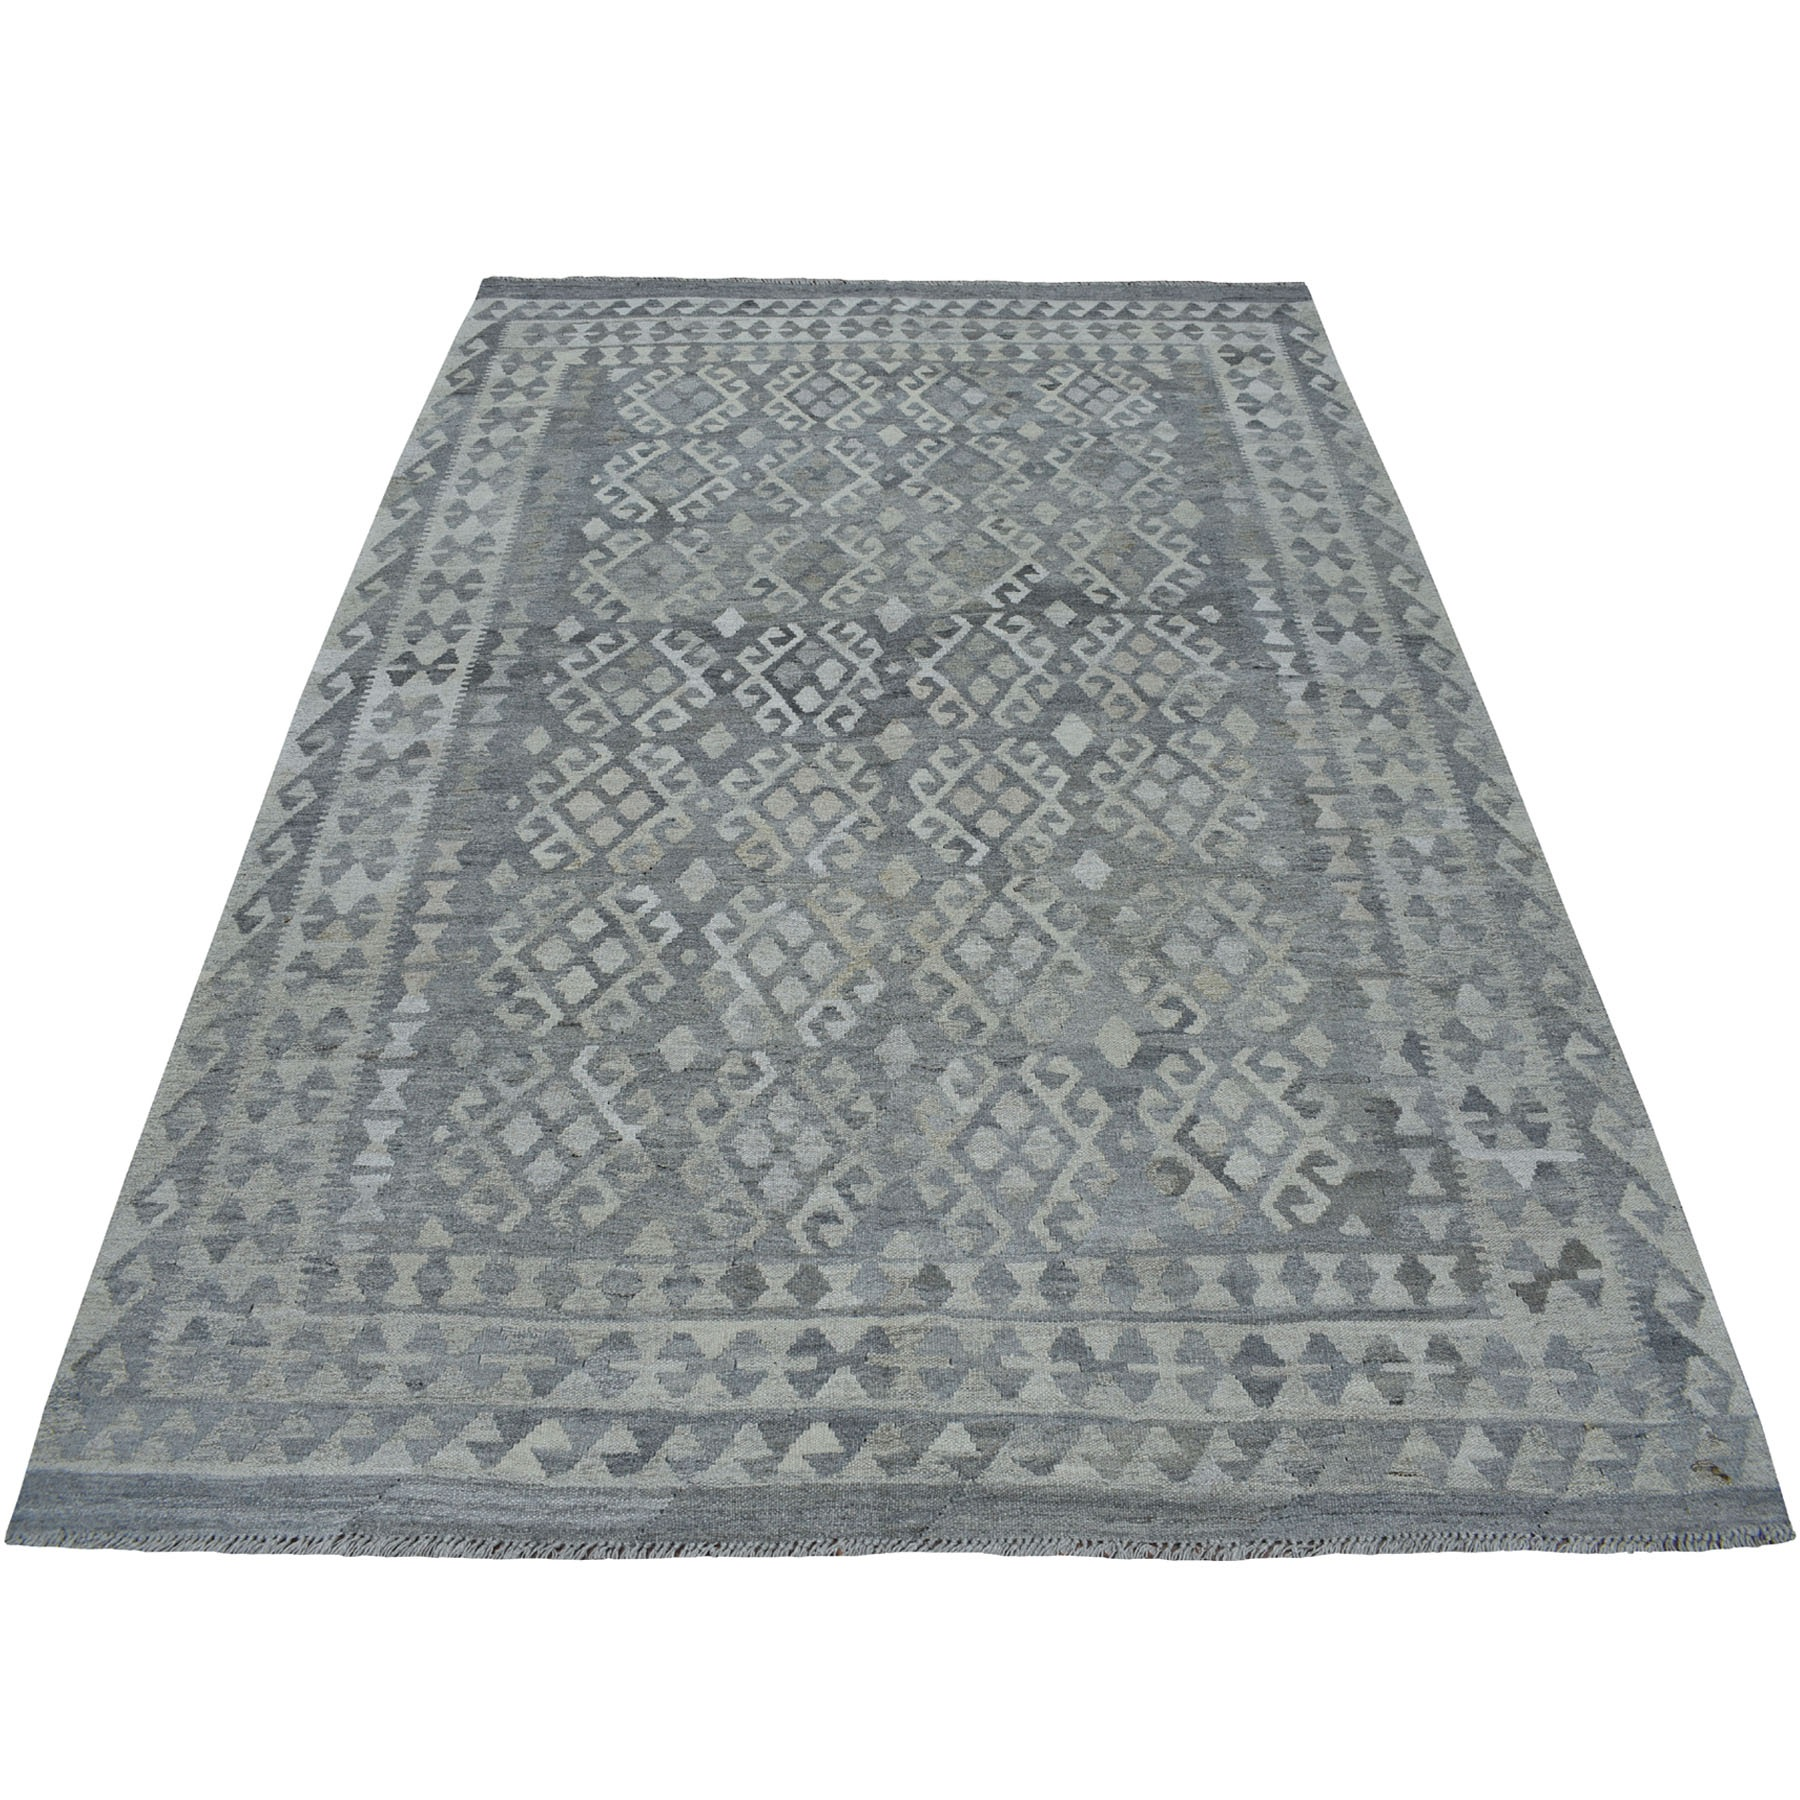 """6'X7'9"""" Undyed Natural Wool Afghan Kilim Reversible Hand Woven Oriental Rug moaec0ca"""